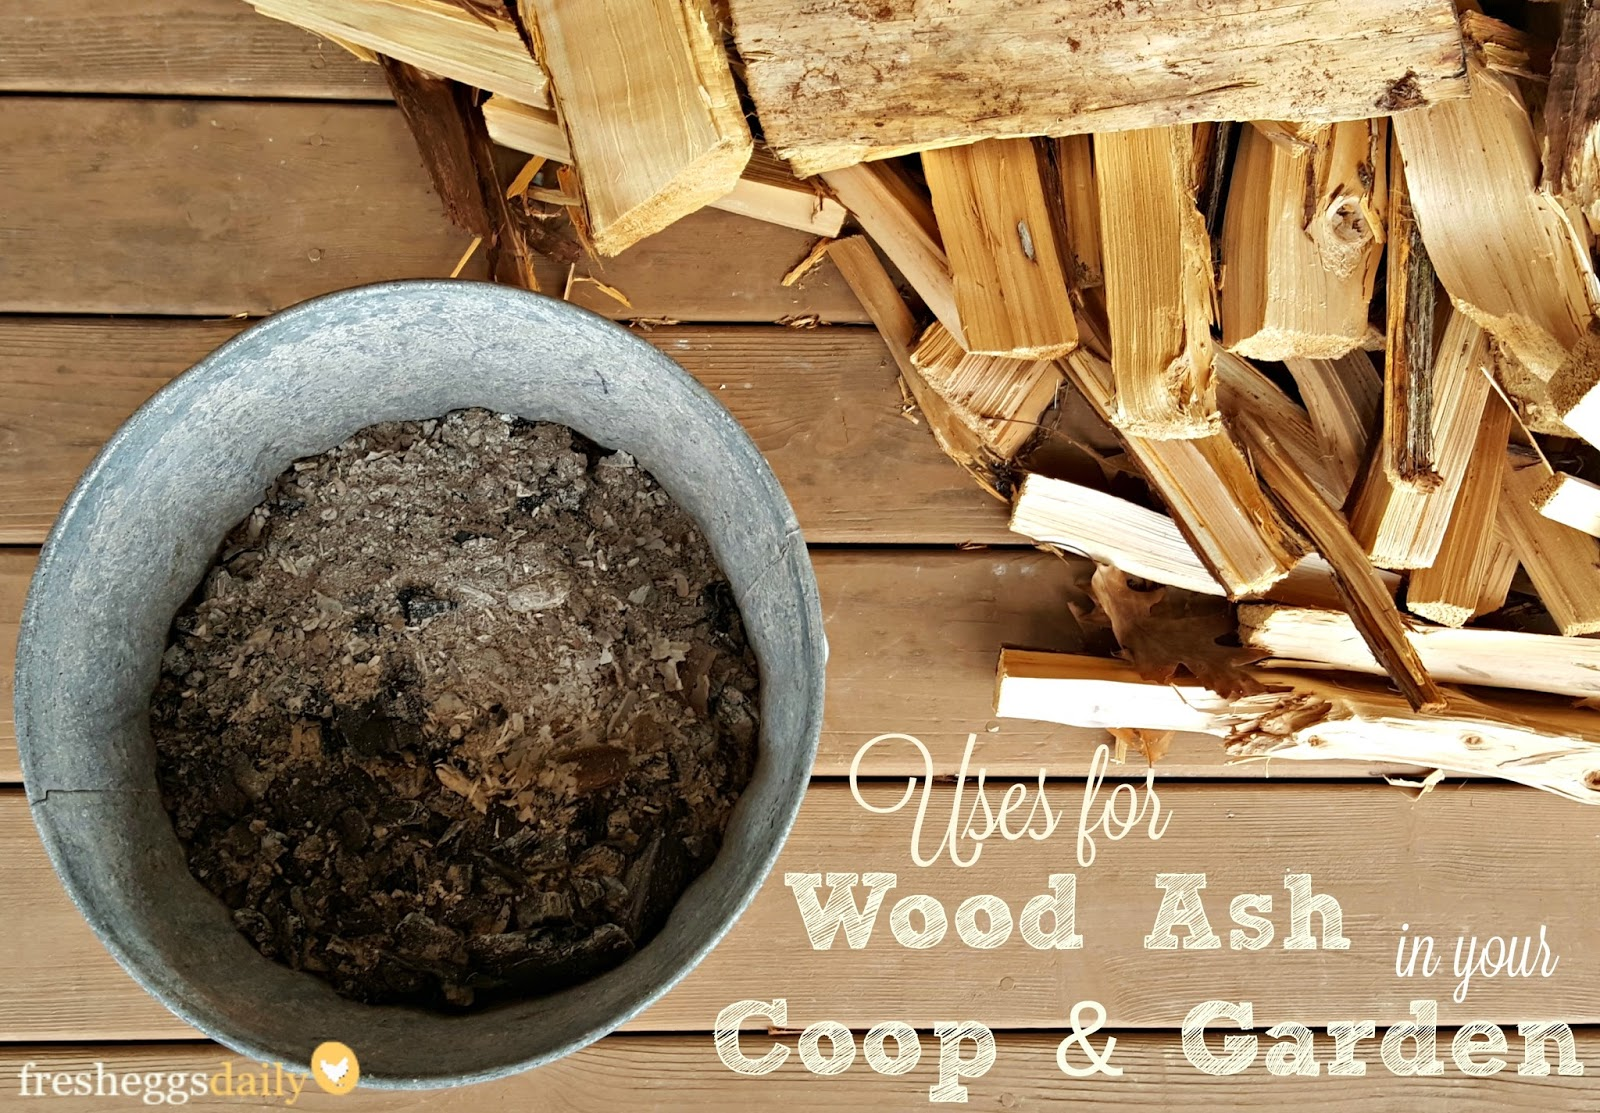 12 Great Uses for Wood Ash in Your Coop, Home and Garden | Fresh